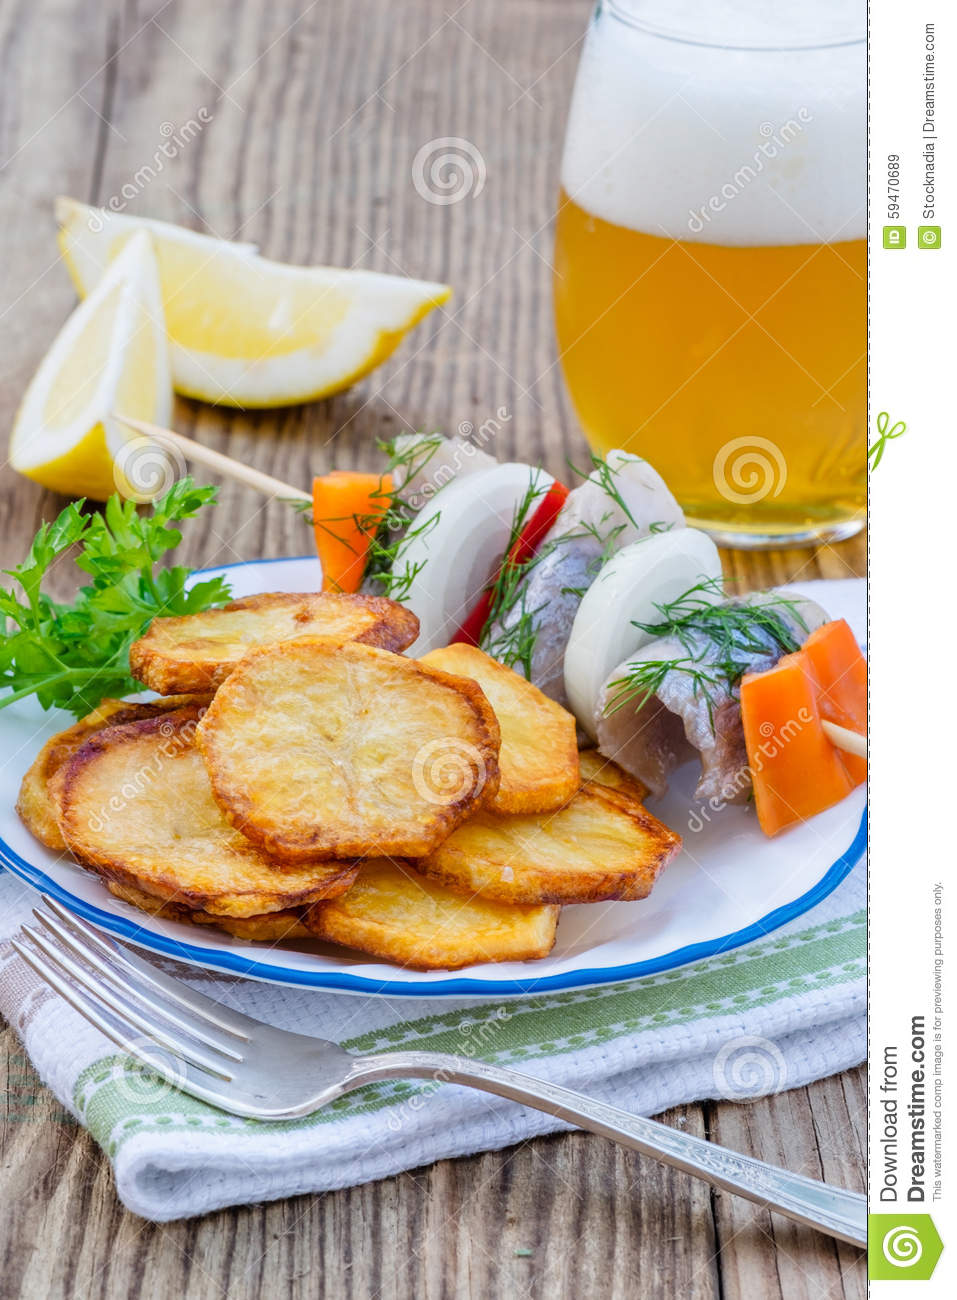 Fried Potato Chips avec des tranches d harengs